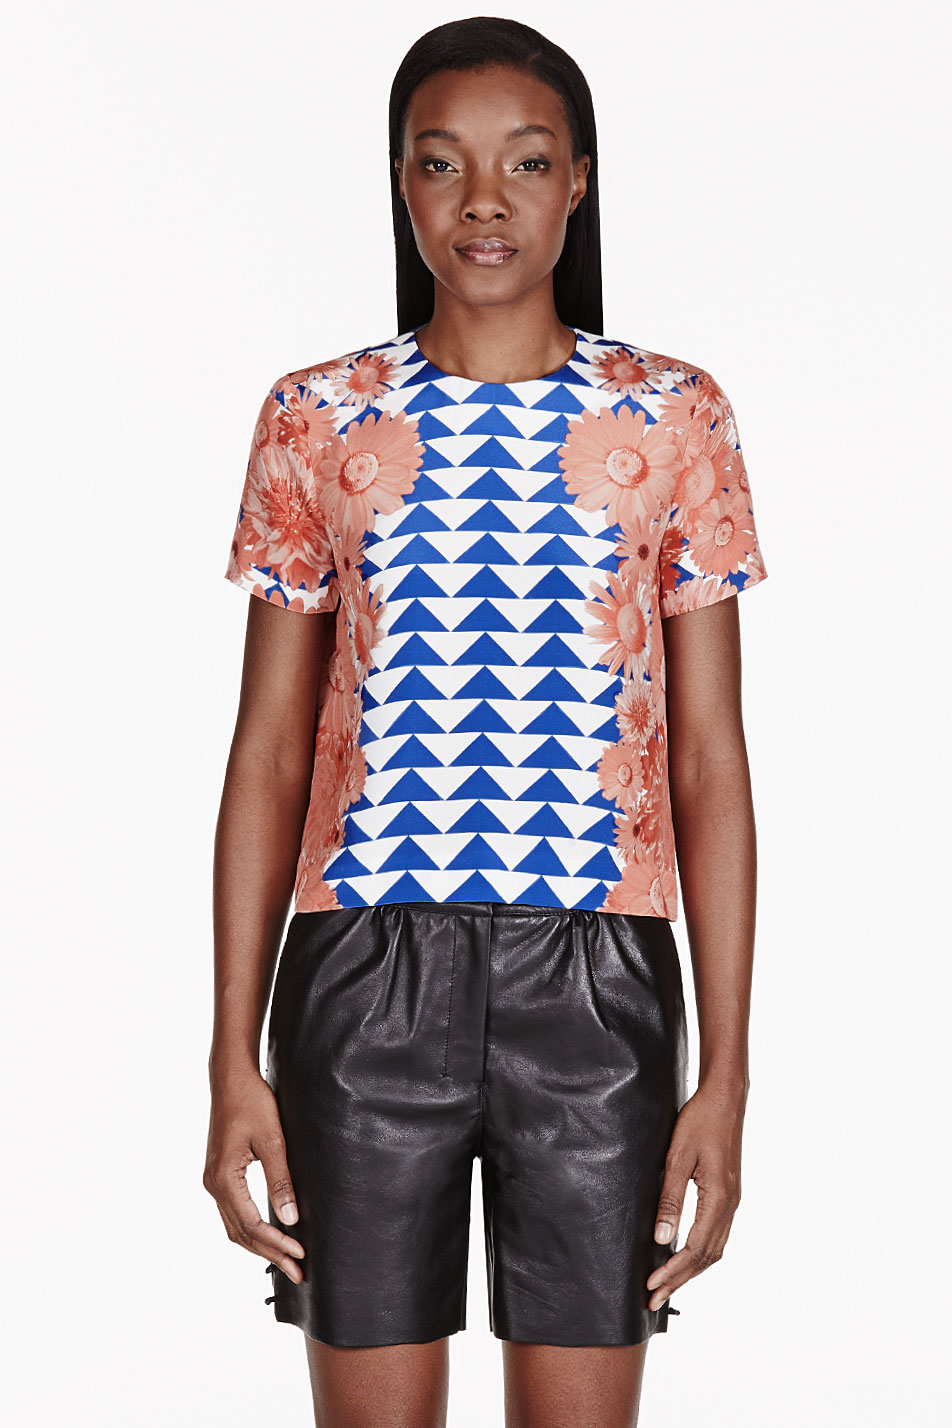 mother of pearl coral crepe de chine boxy juno heave t_shirt